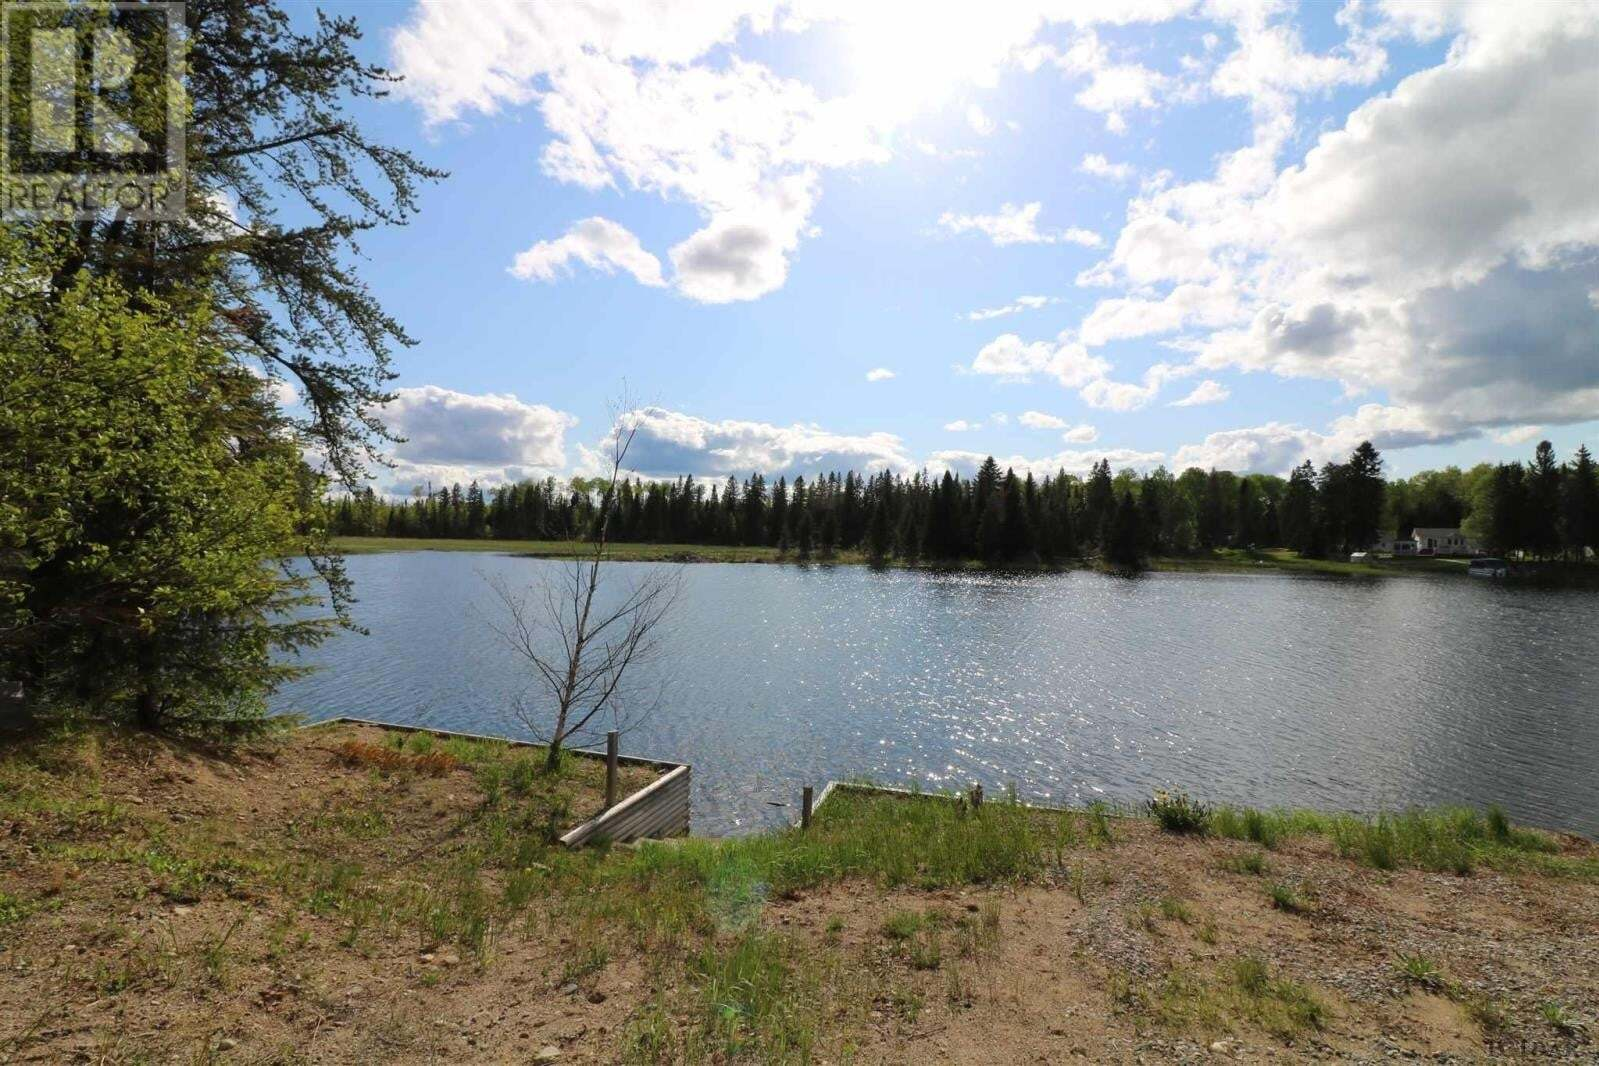 Residential property for sale at 154 Sunset Bay Rd Iroquois Falls Ontario - MLS: TM191772